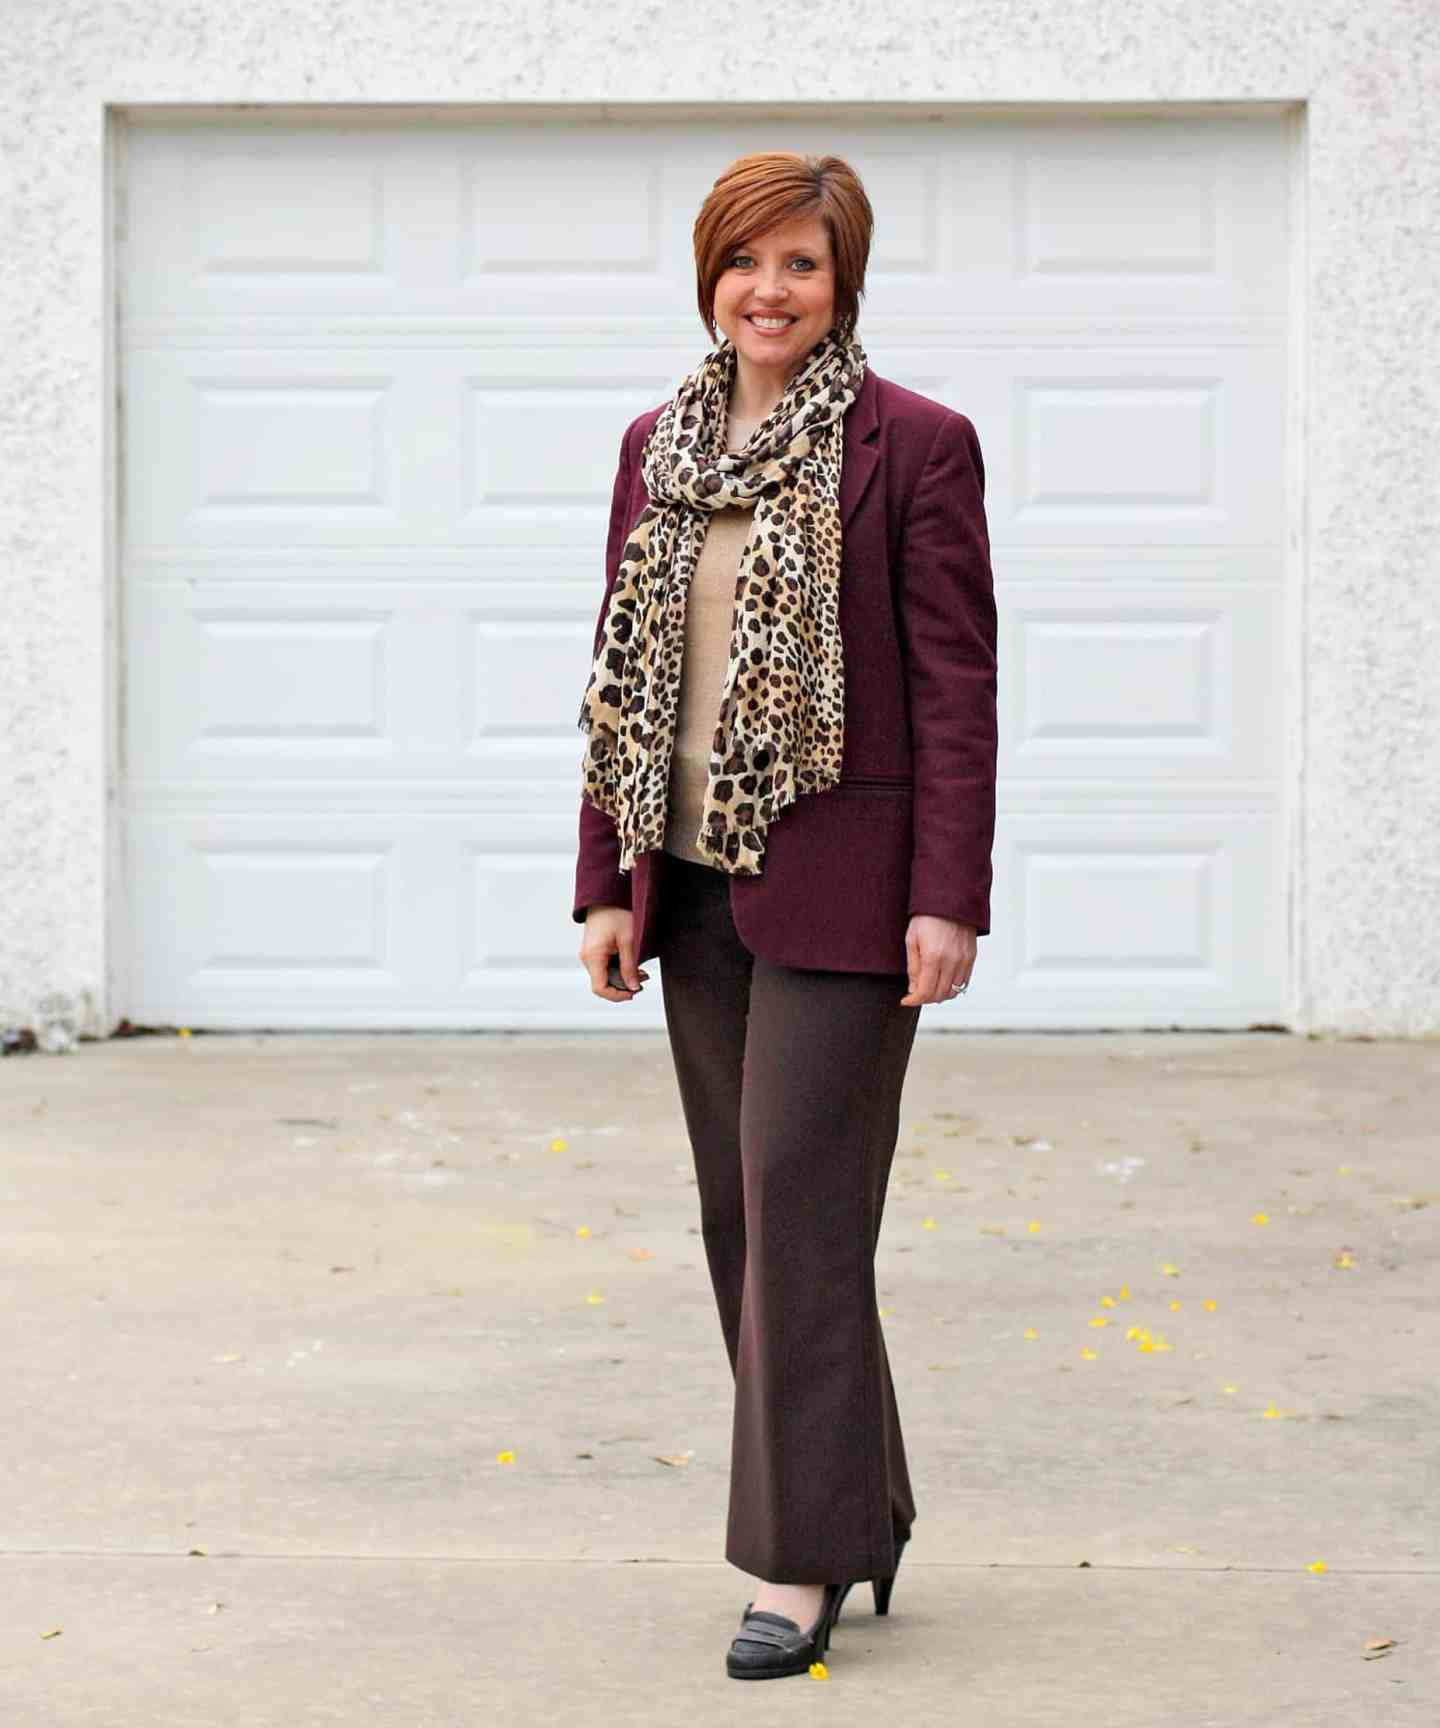 womens office outfit with burgundy blazer, brown pants, and leopard scarf